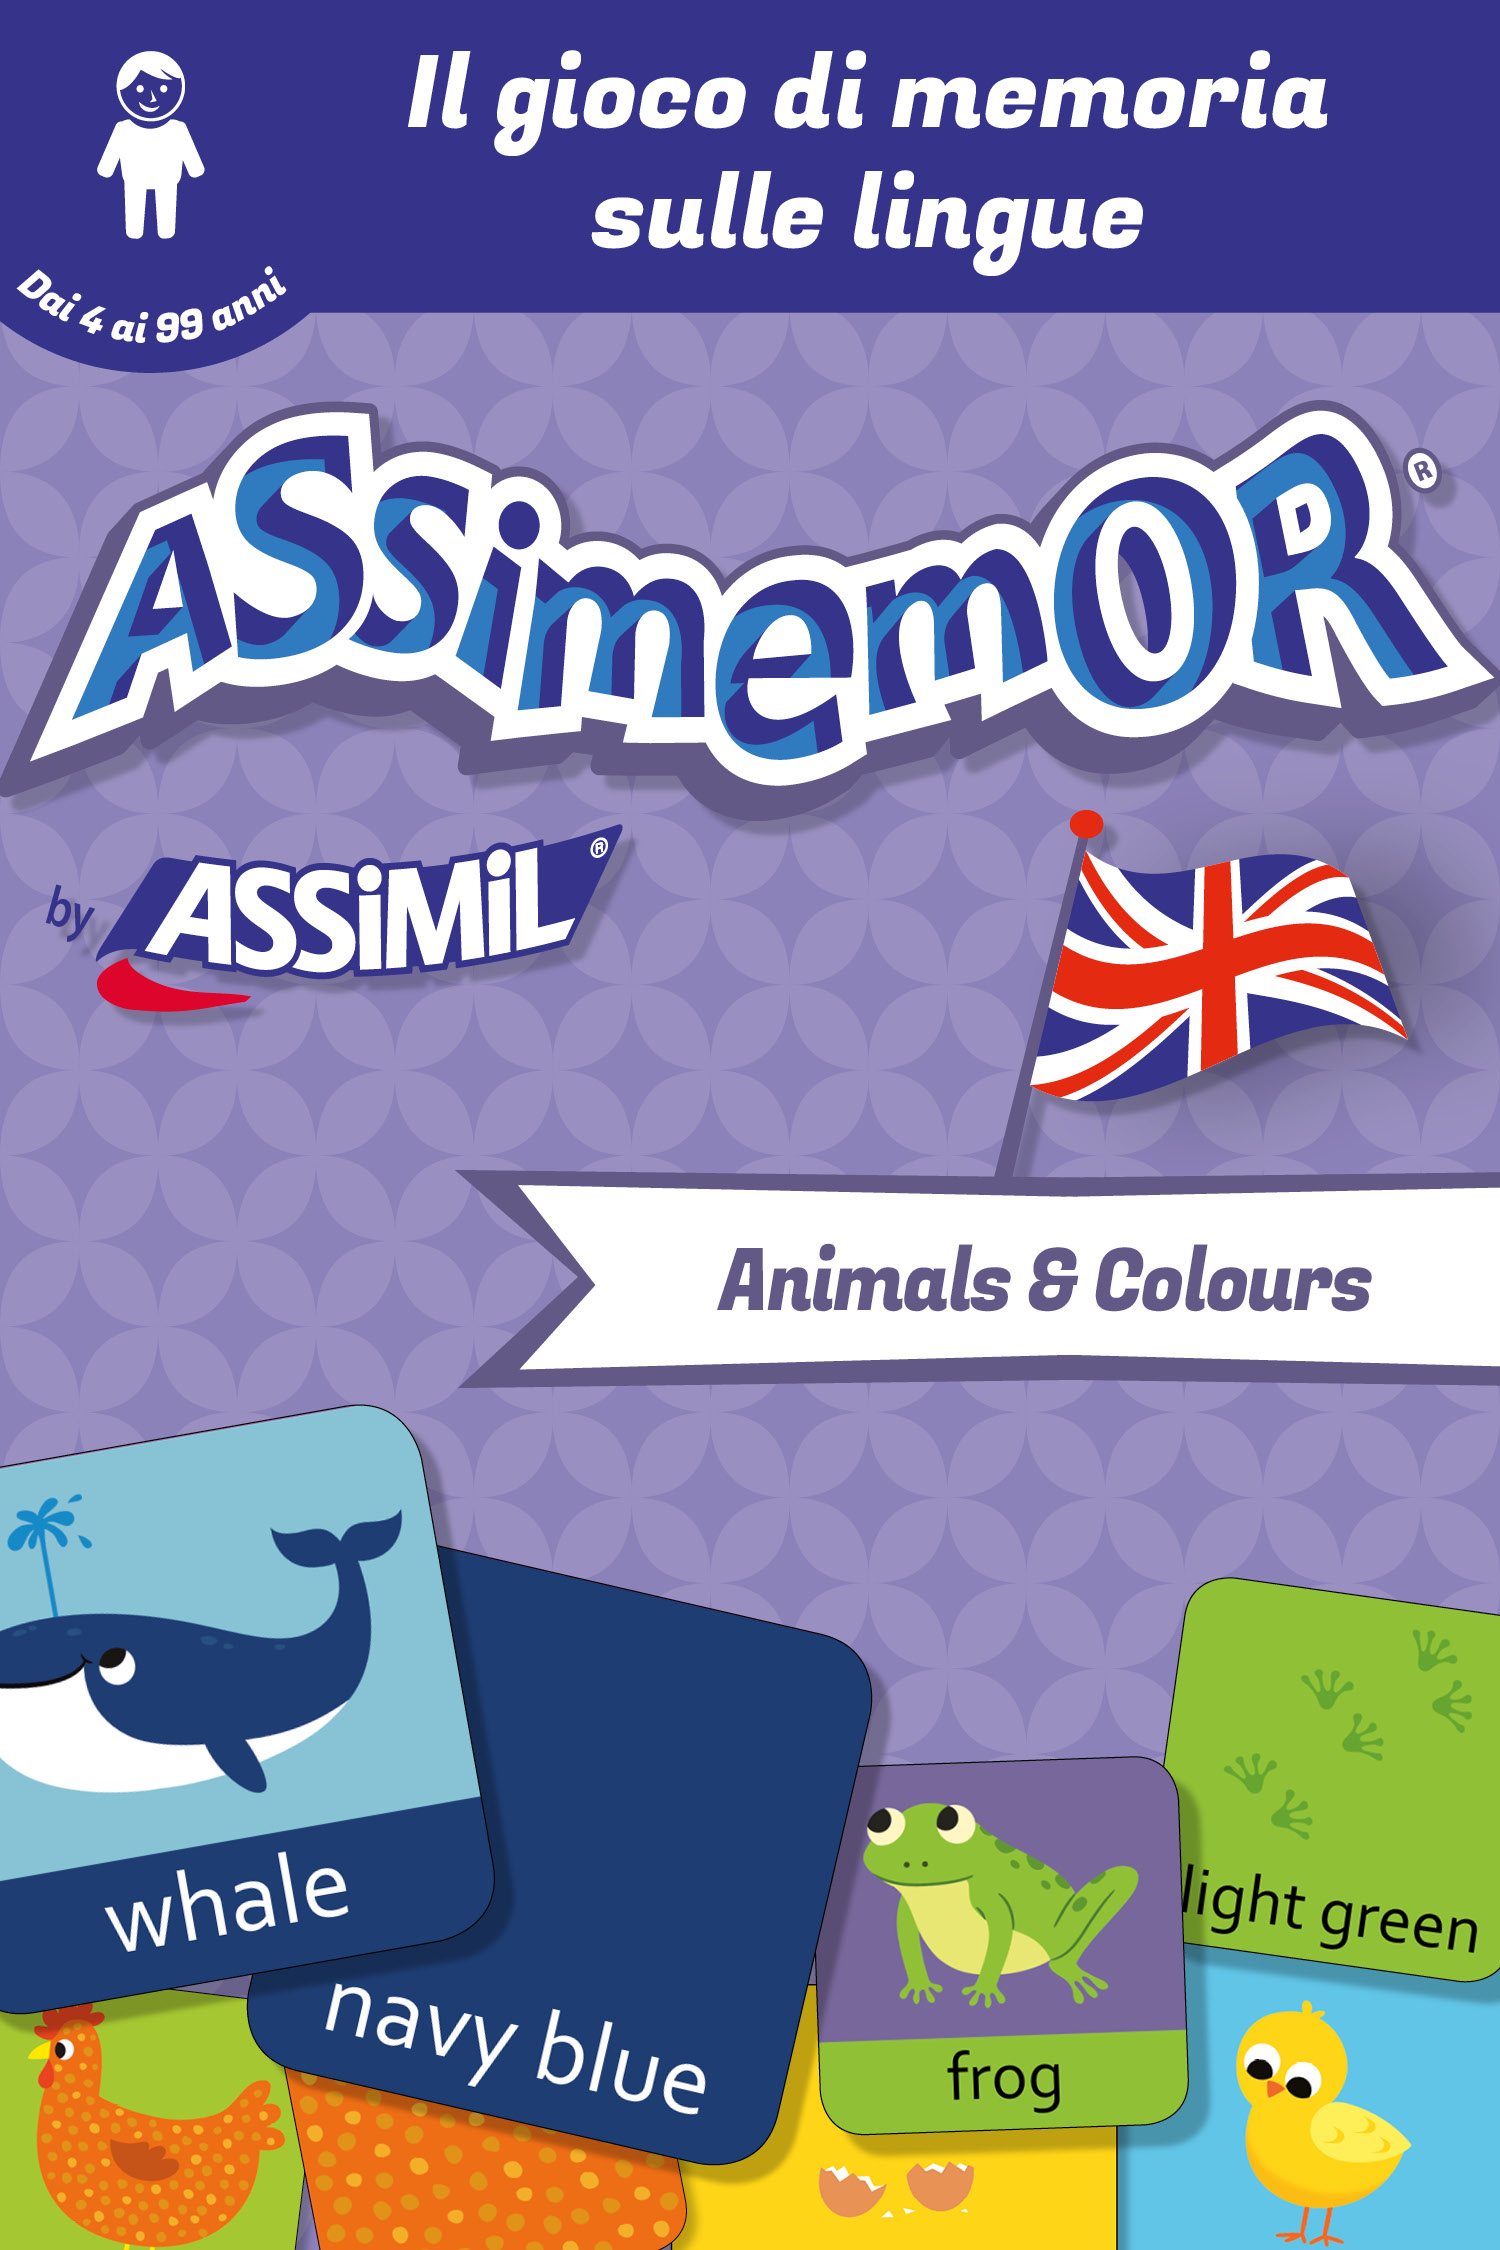 Assimemor - Le mie prime parole in inglese: Animals and Colours De  Céladon  et Jean-Sébastien Deheeger - Assimil